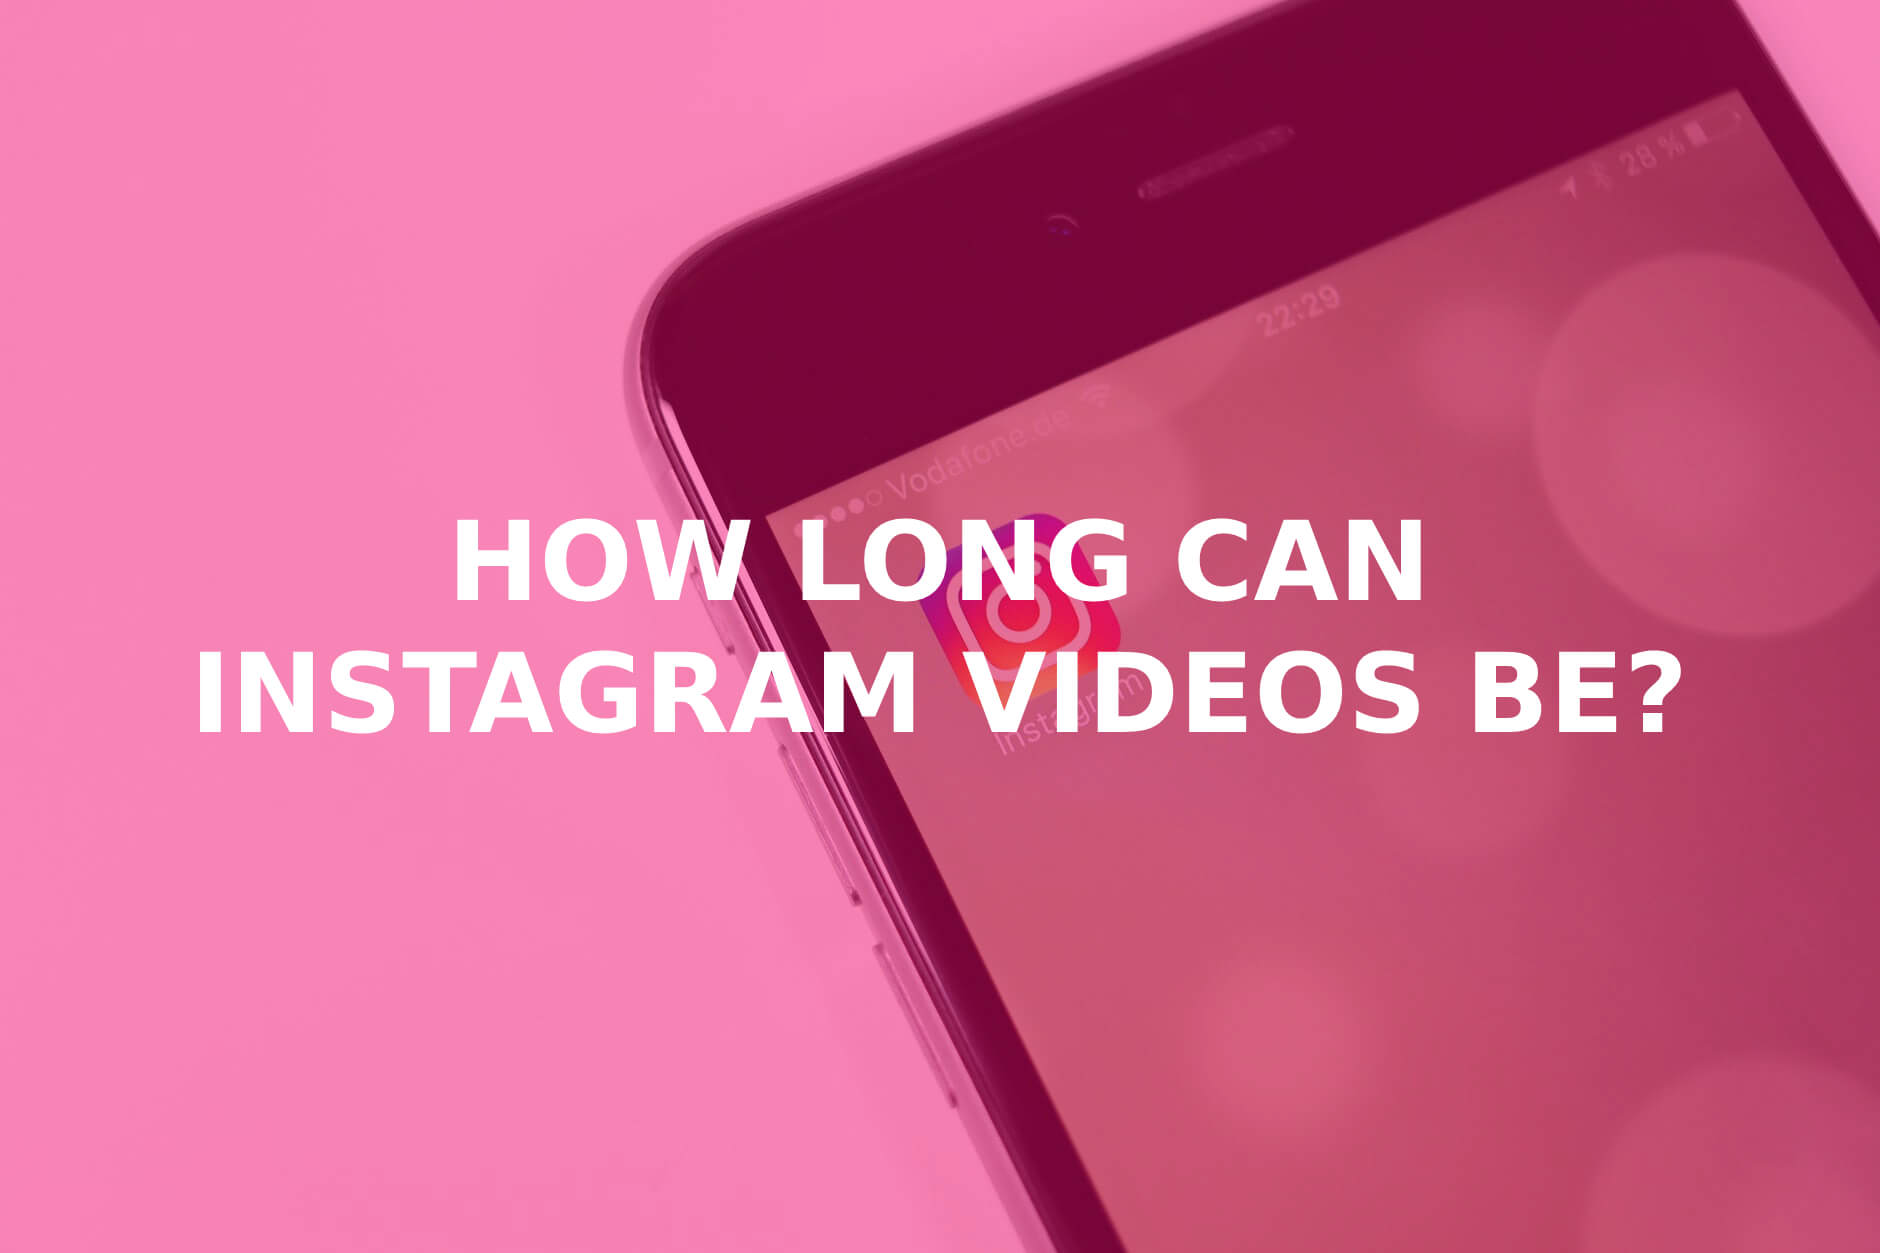 How Long are Instagram Videos